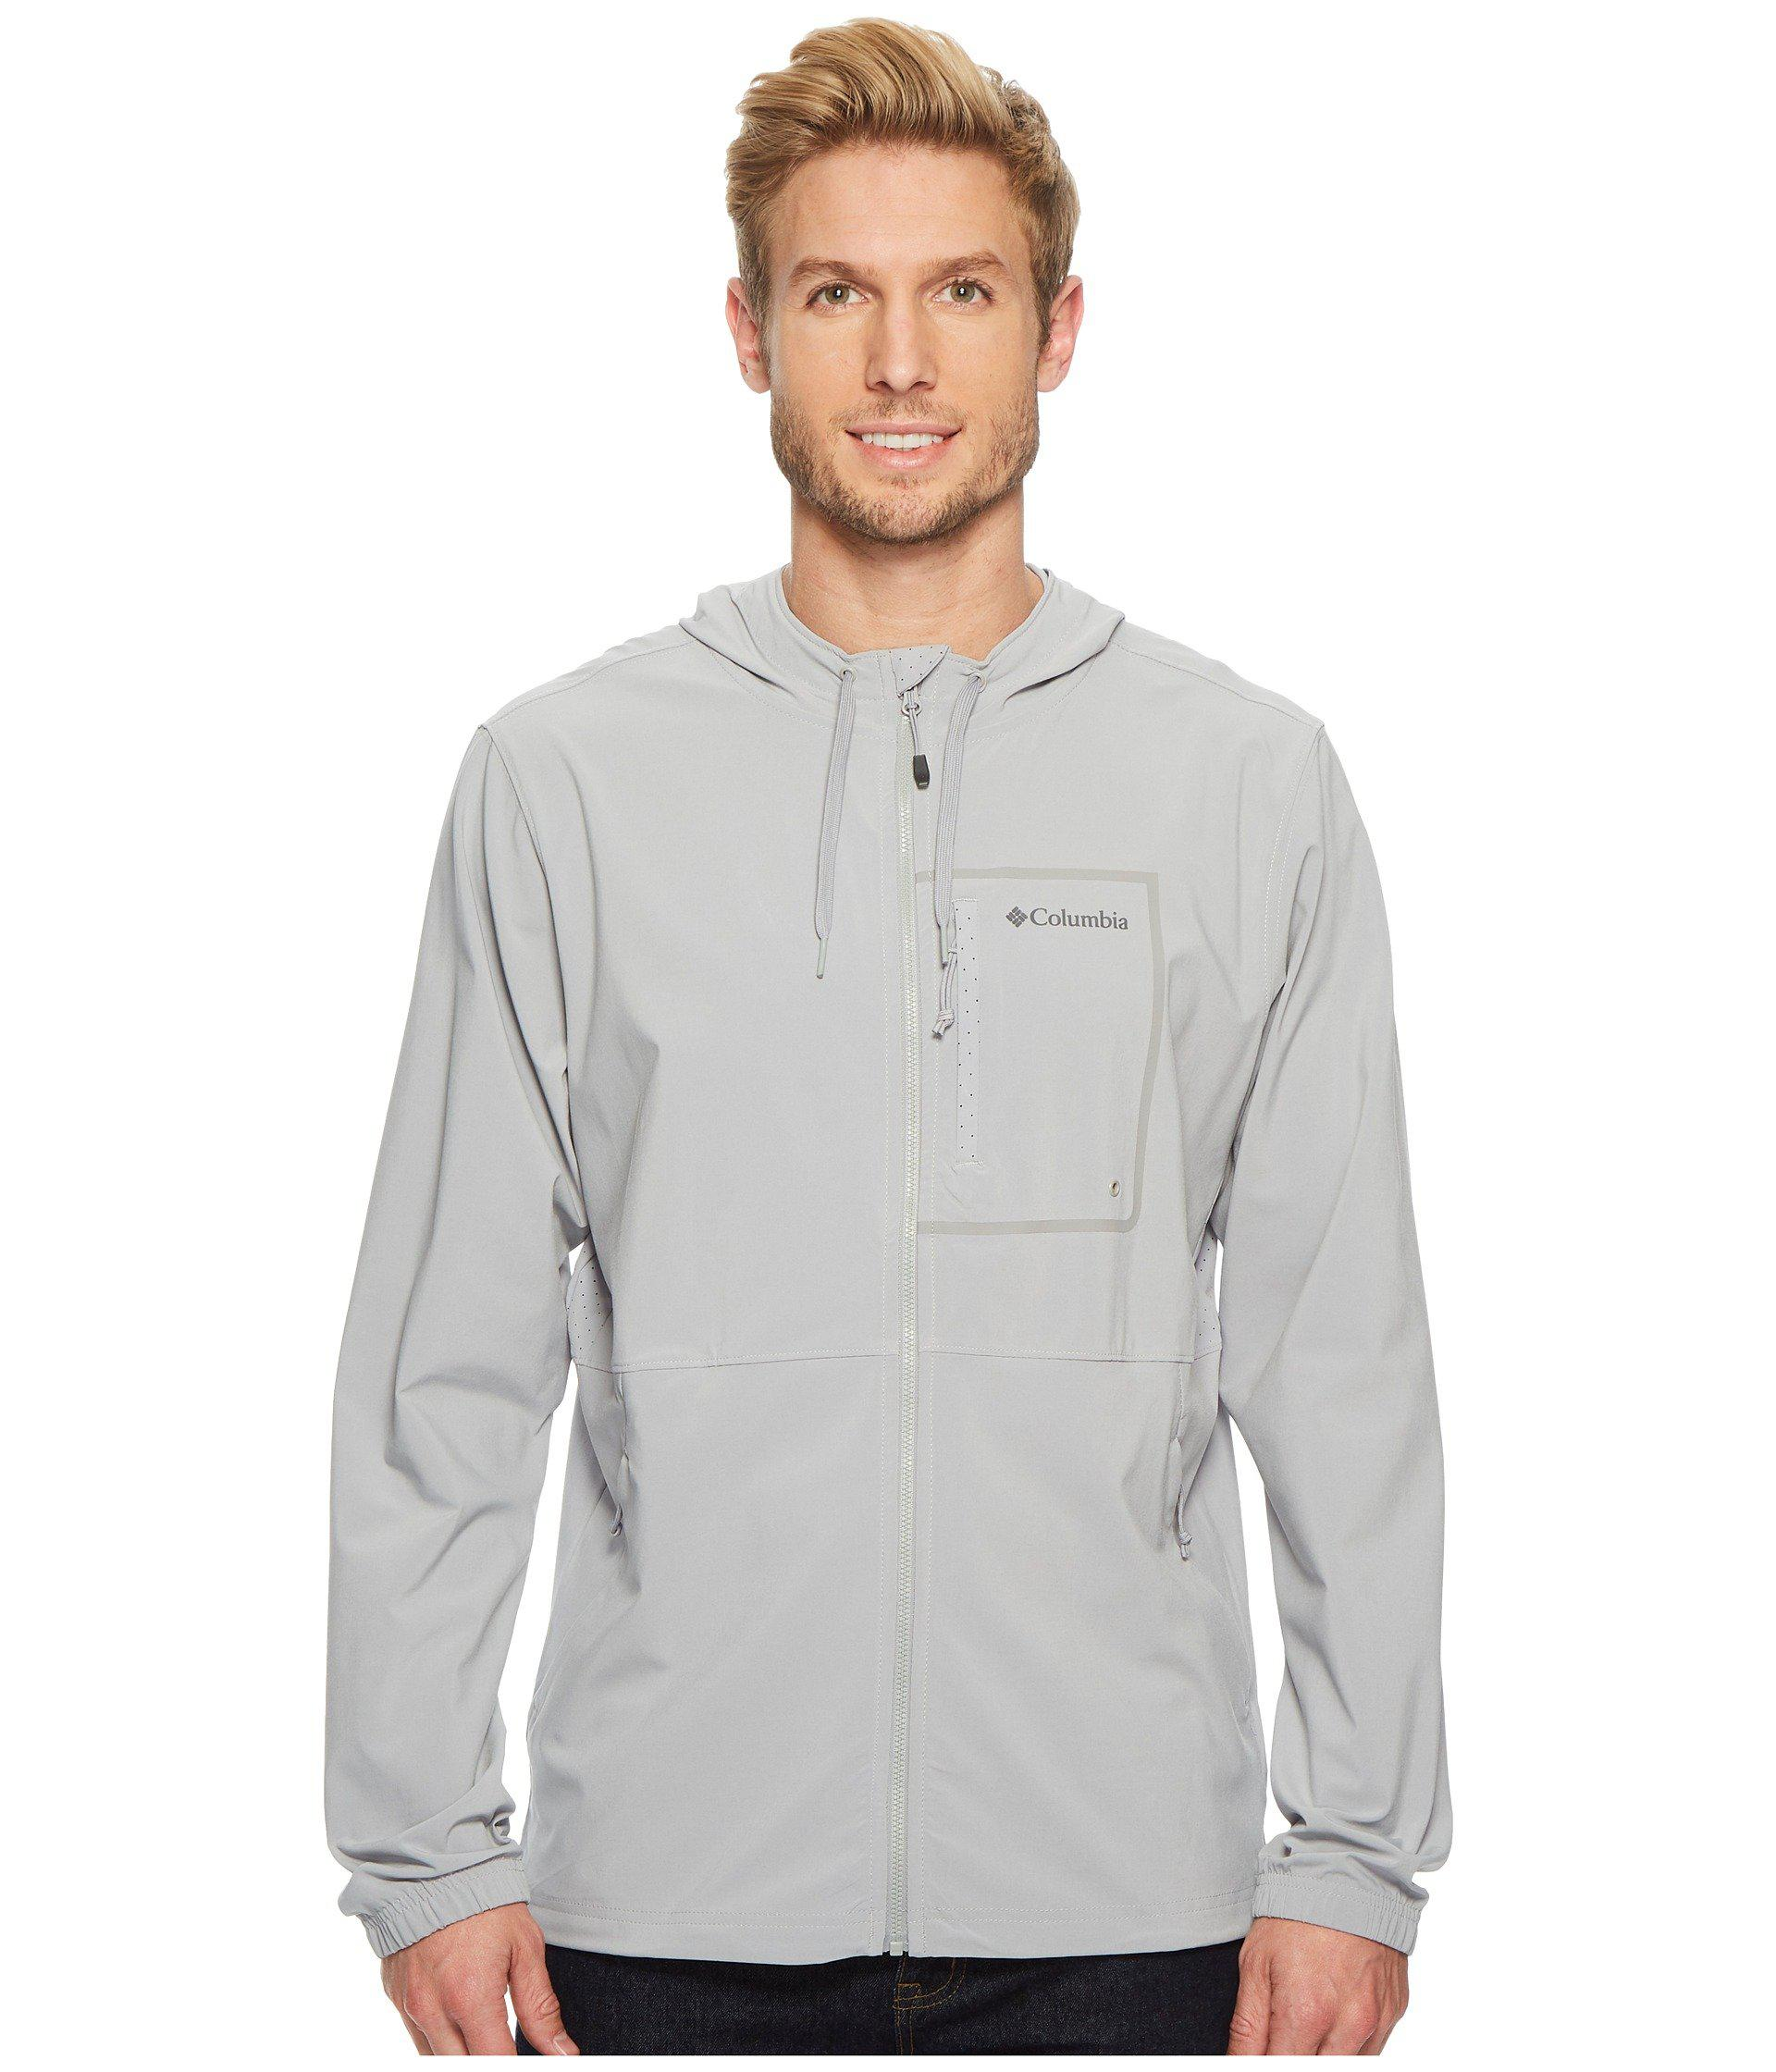 1e05d87f3 Lyst - Columbia Outdoor Elements Hoodie (shark) Men's Sweatshirt in ...